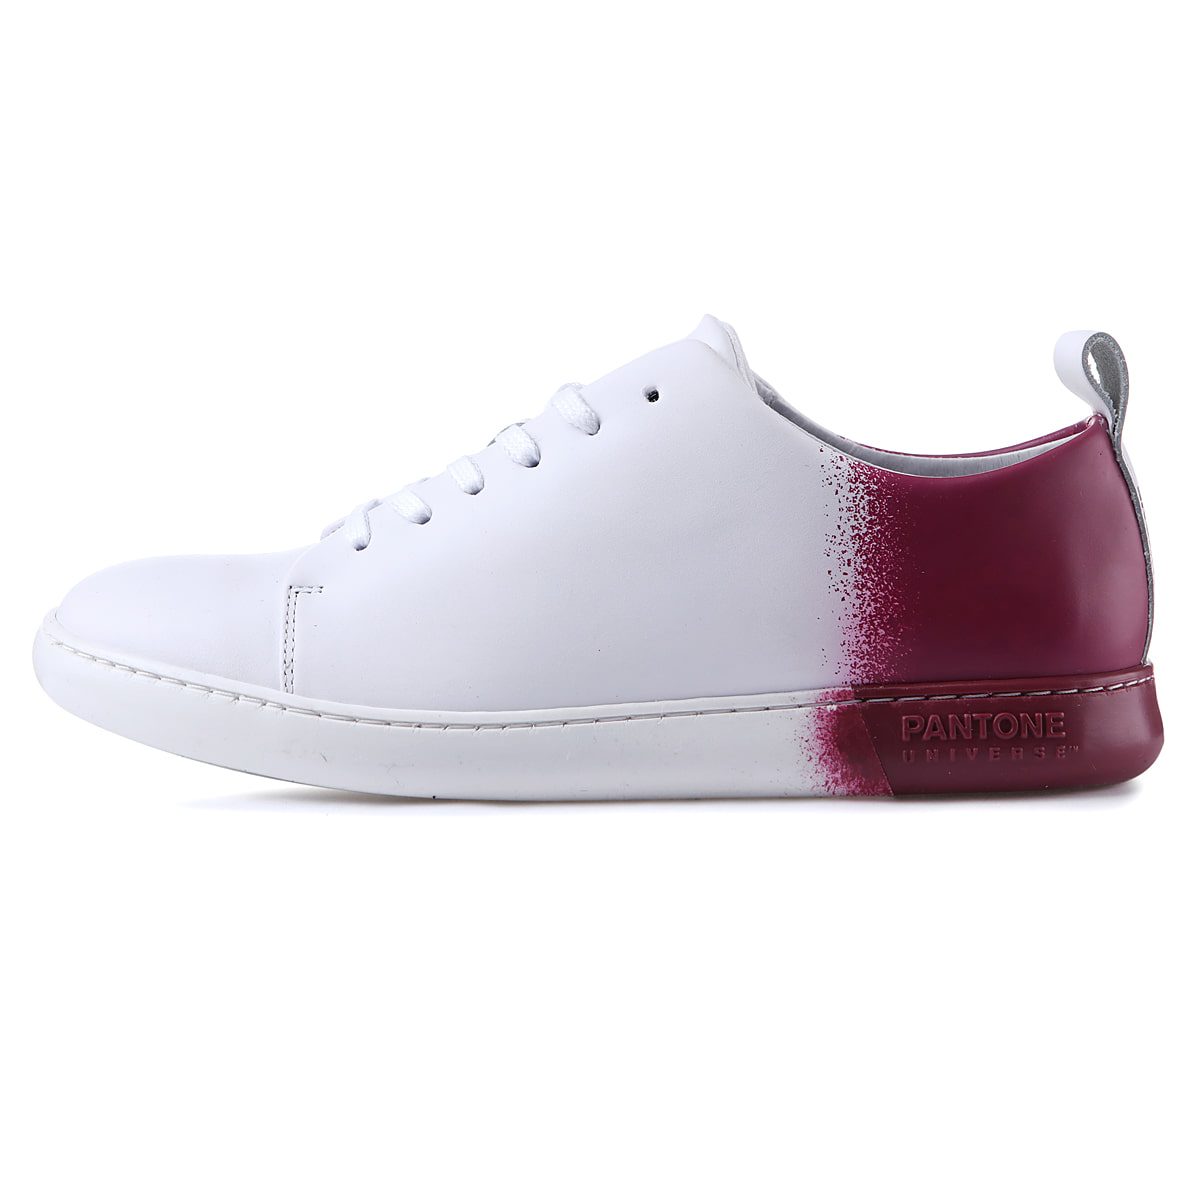 [팬톤]NYC Sneakers_Beaujolais [P172SE03PI]